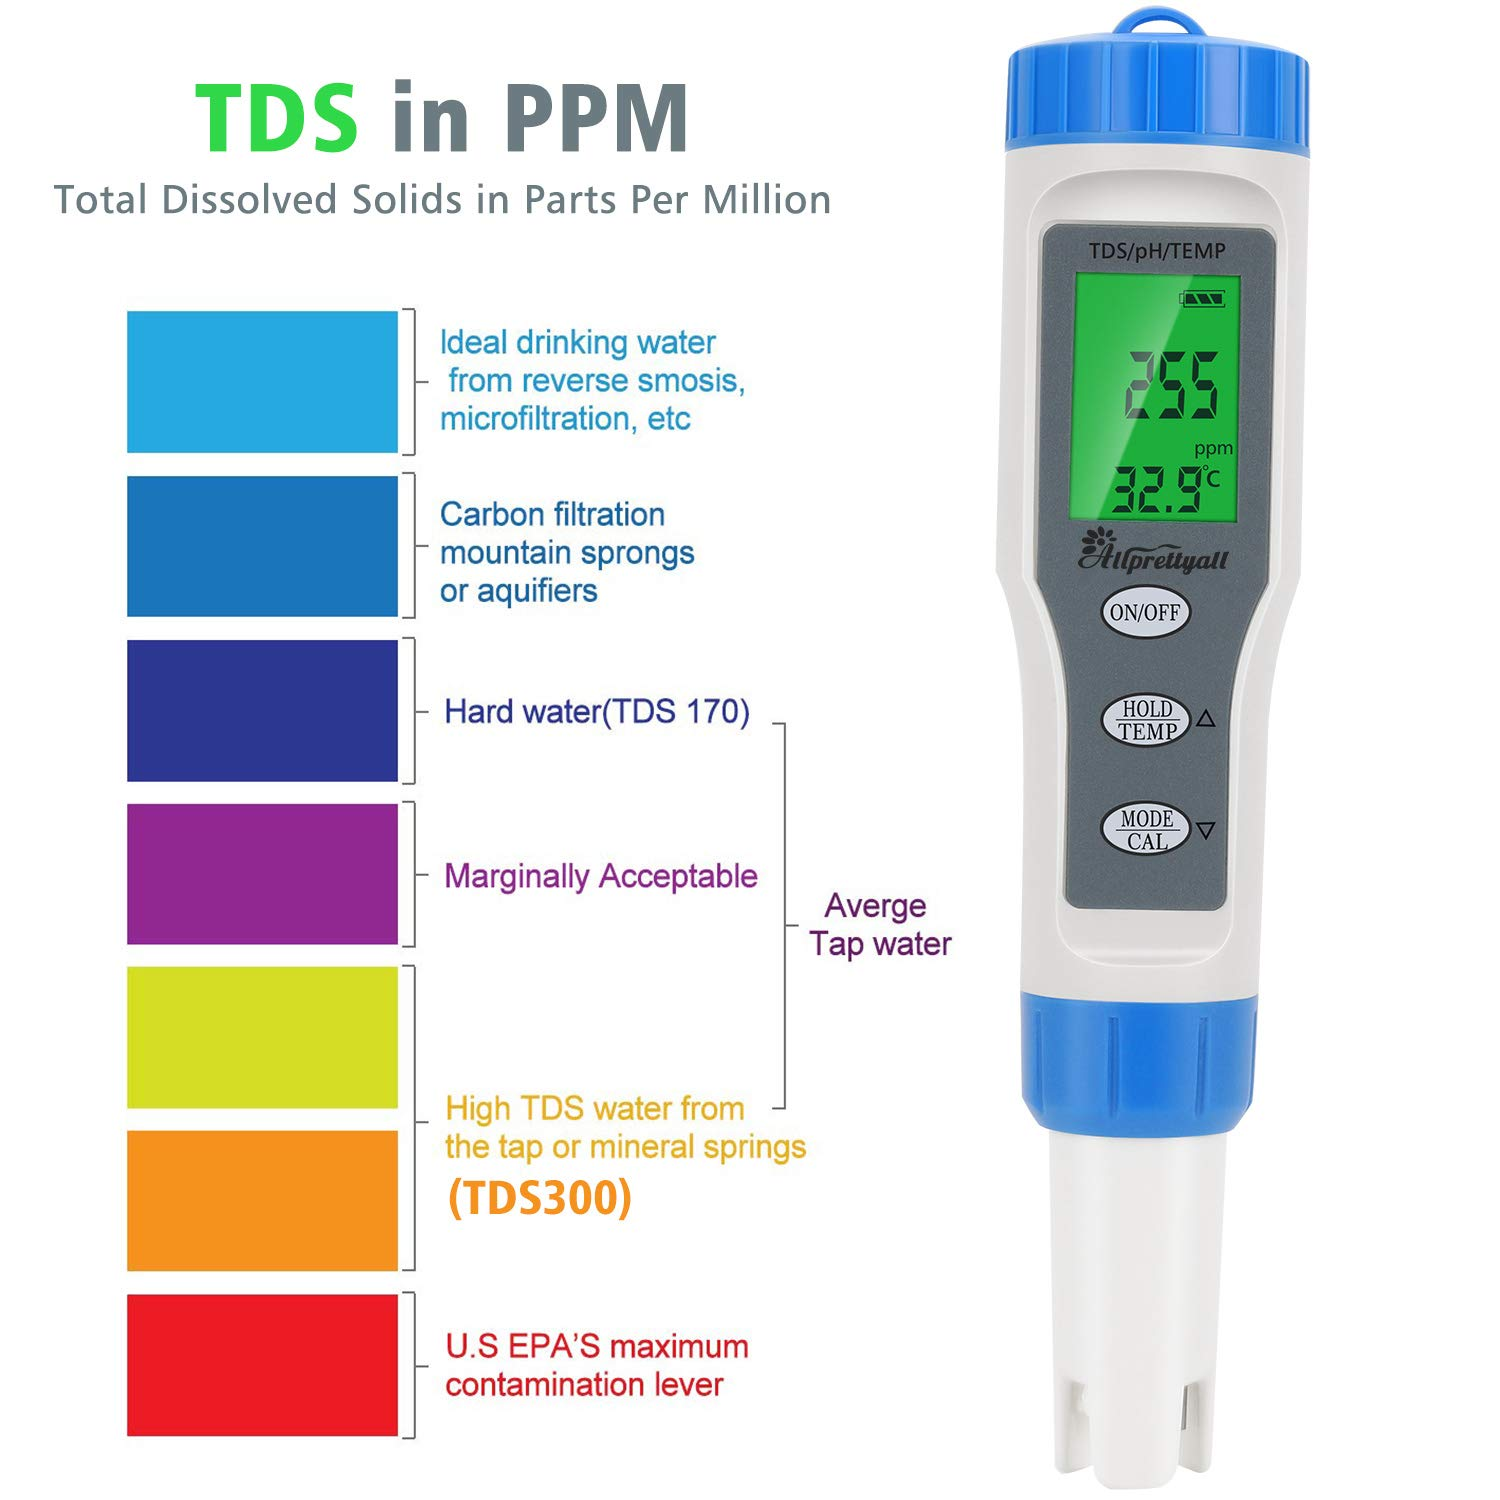 Aquarium Hydroponics Lab Allprettyall Digital PH Meter PH Tester 0.01 PH High Accuracy Water Quality Tester with ATC: 3 in 1 PH TDS Temp Pocket Size for Household Drinking Water